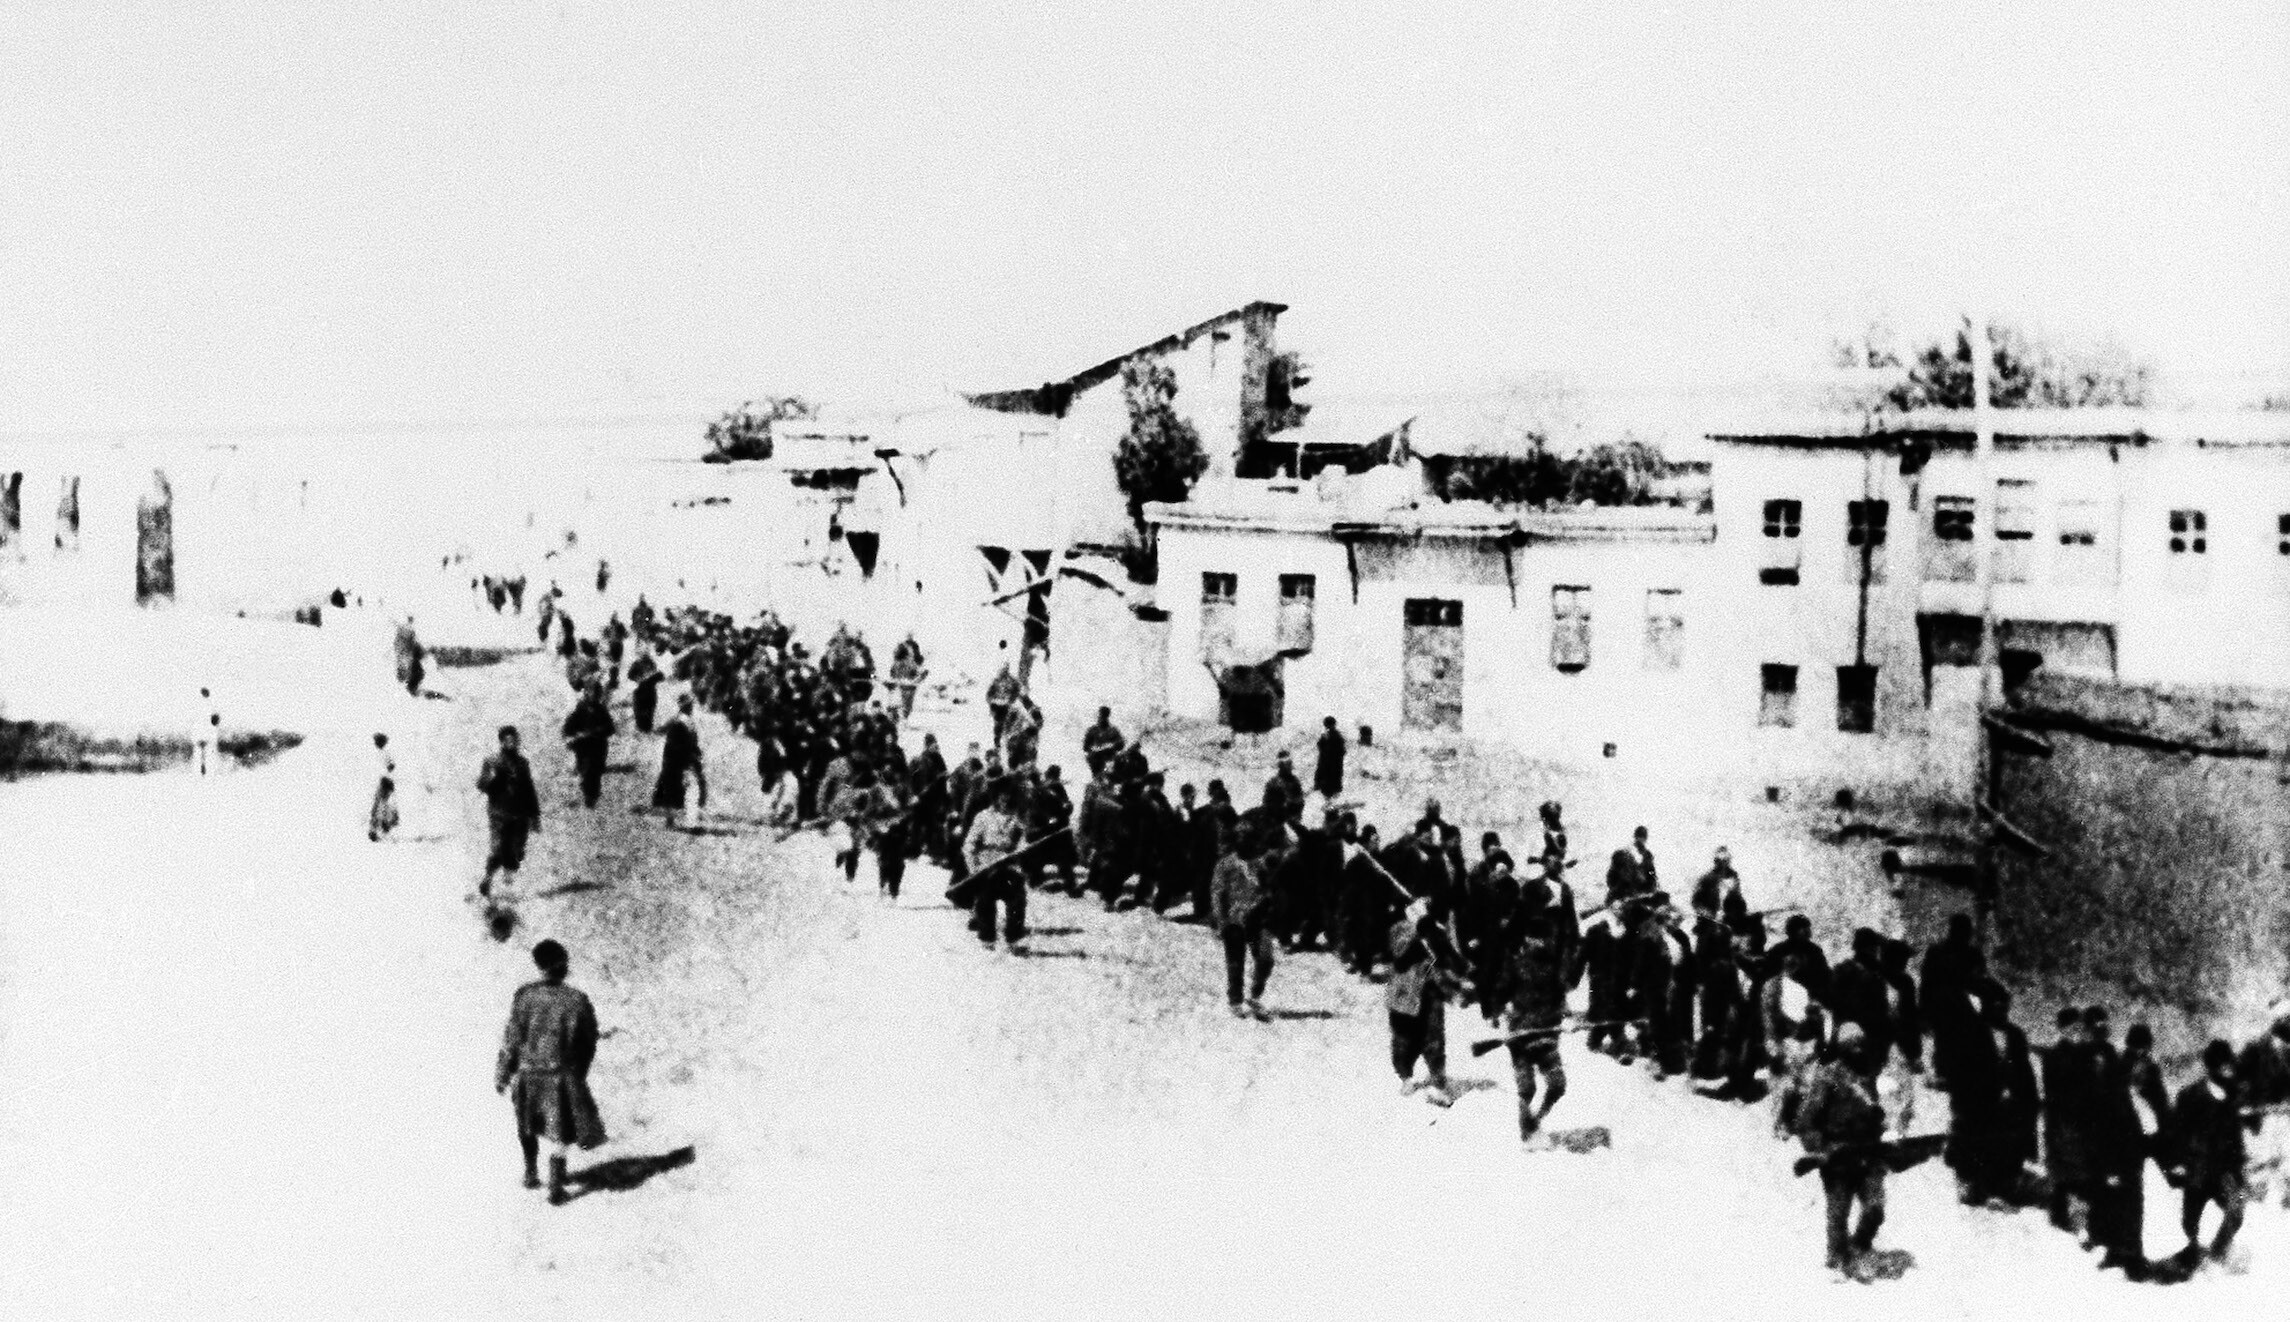 In this 1915 file photo, Armenians marched long distances and were said to have been massacred in Turkey.